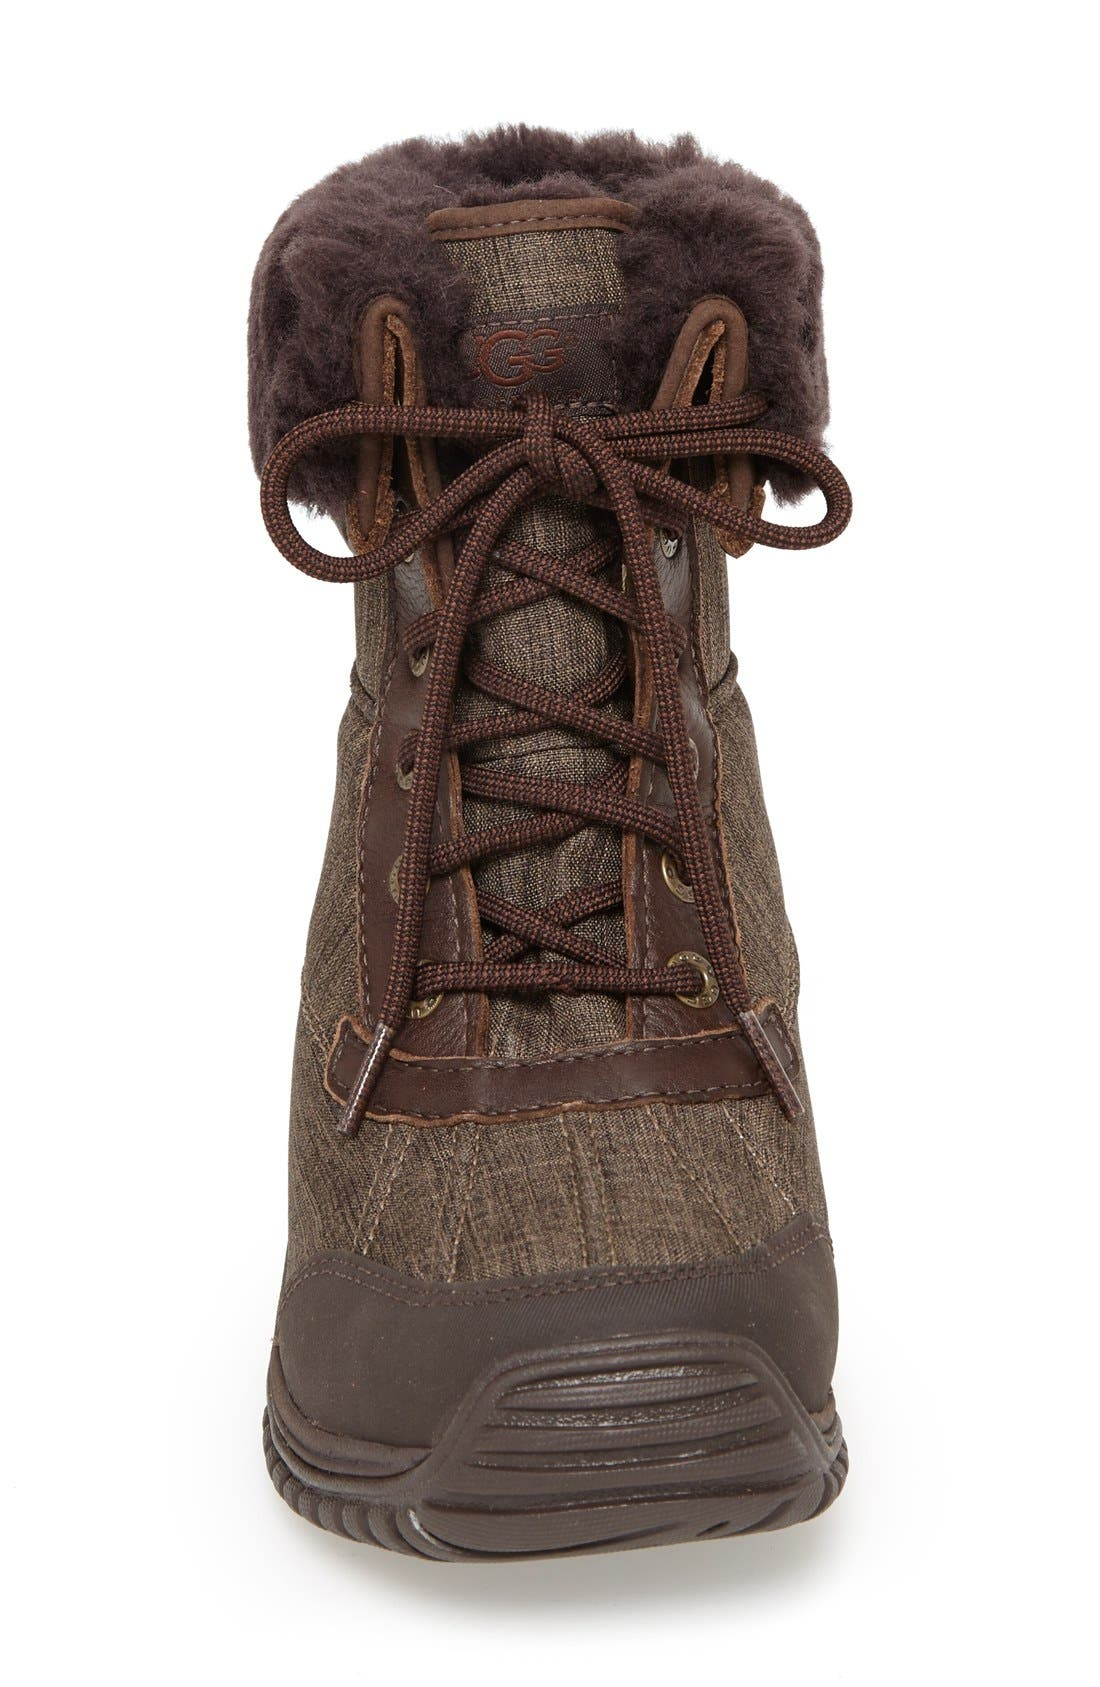 Adirondack II Waterproof Boot,                             Alternate thumbnail 36, color,